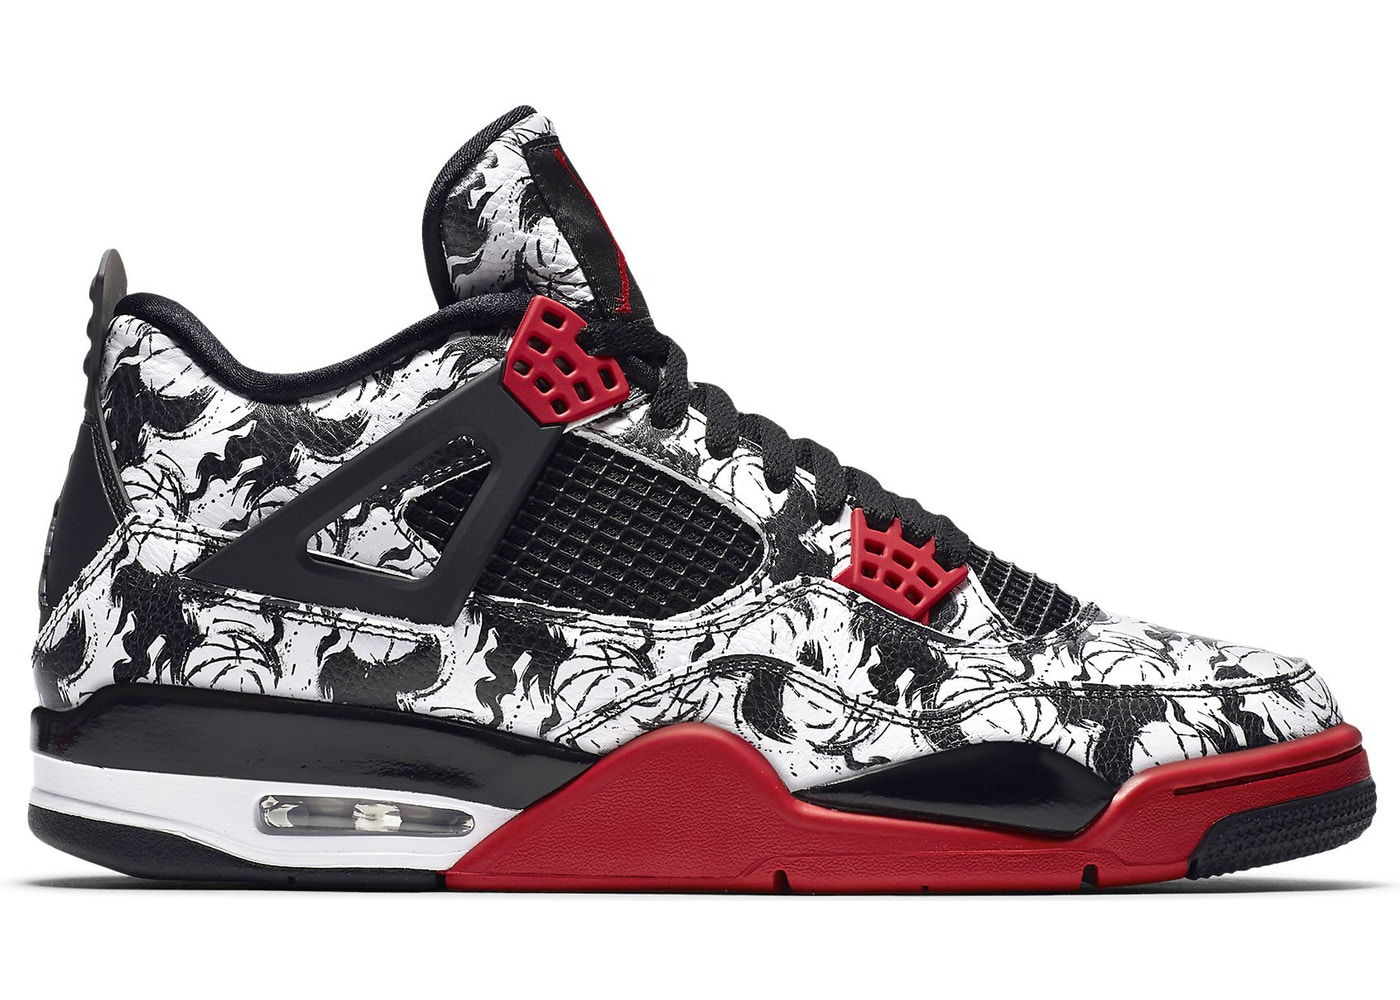 buy online 9f03a df0ce Jordan 4 Retro Tattoo (2018) - BQ0897-006